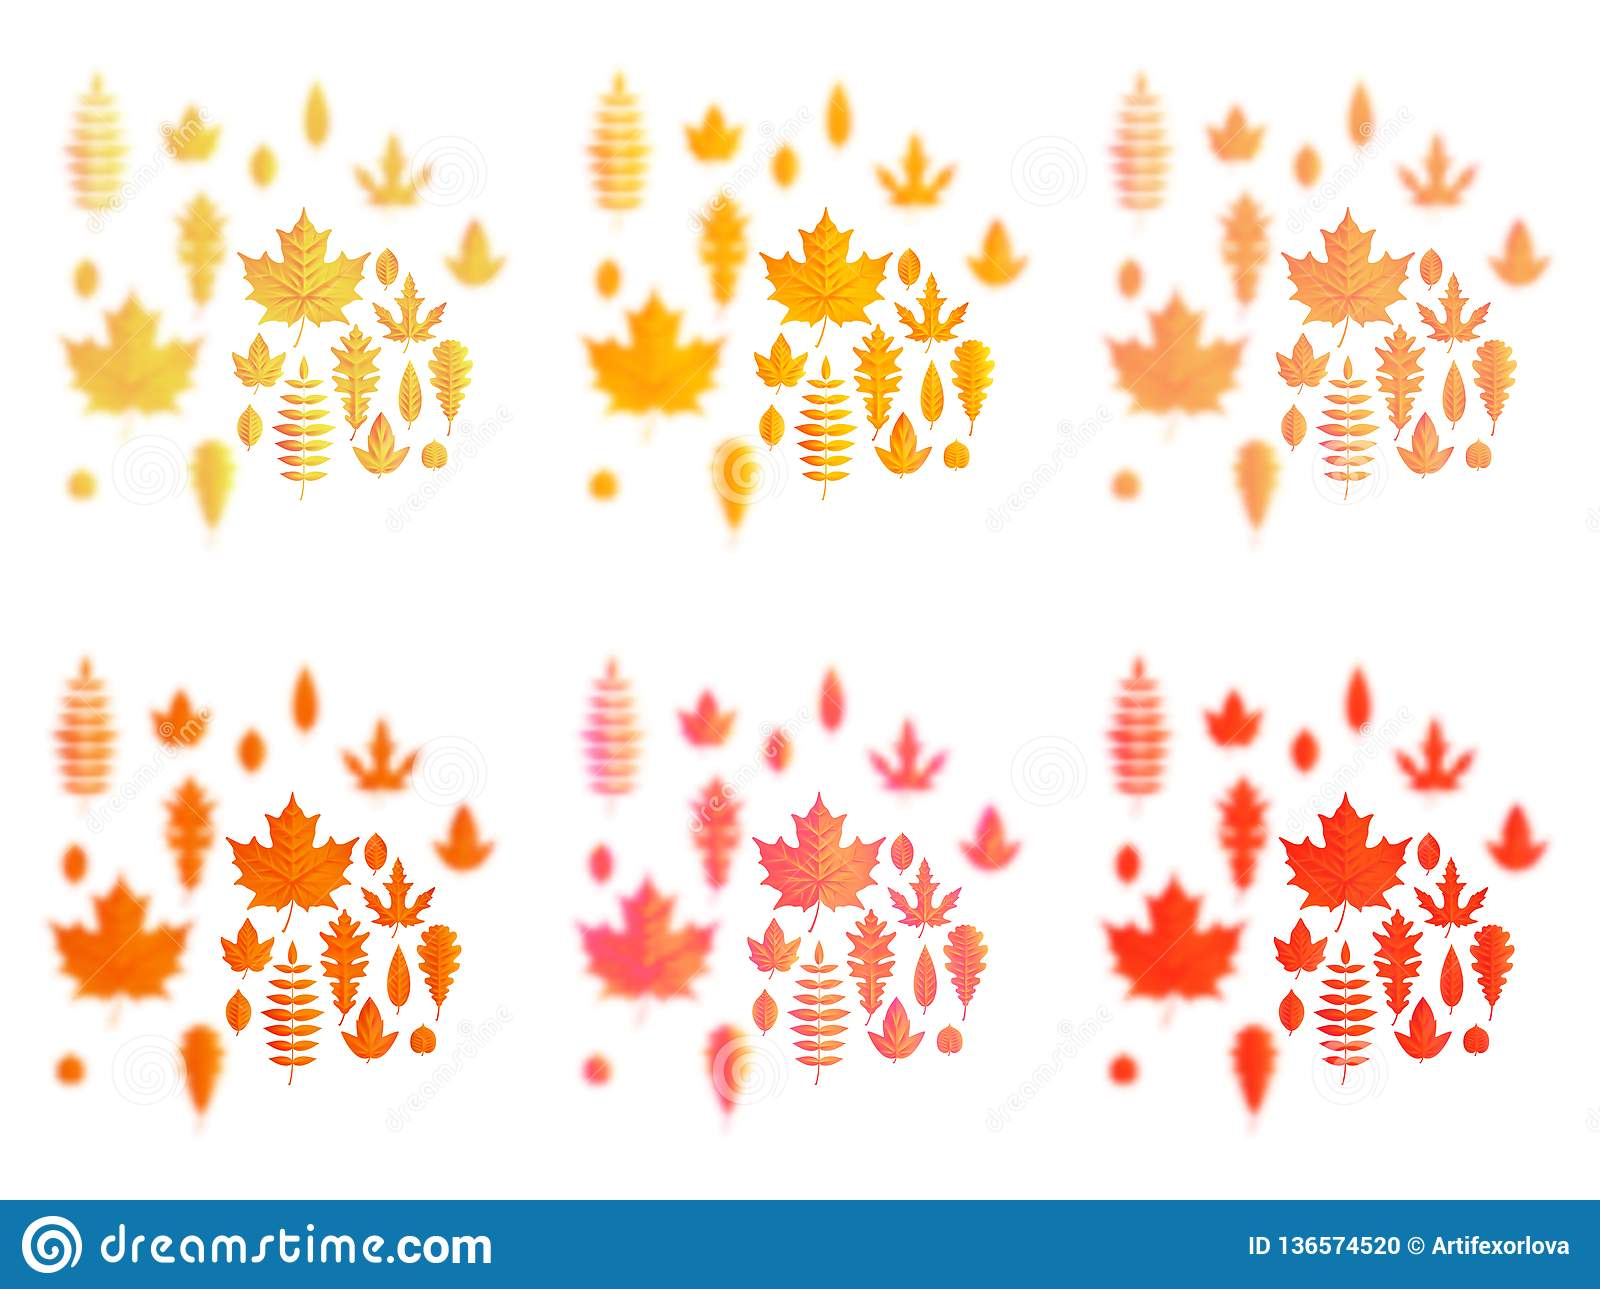 Set of autumn leaves or fall foliage icons. Maple, oak or birch and rowan tree leaf. Falling poplar, beech or elm and